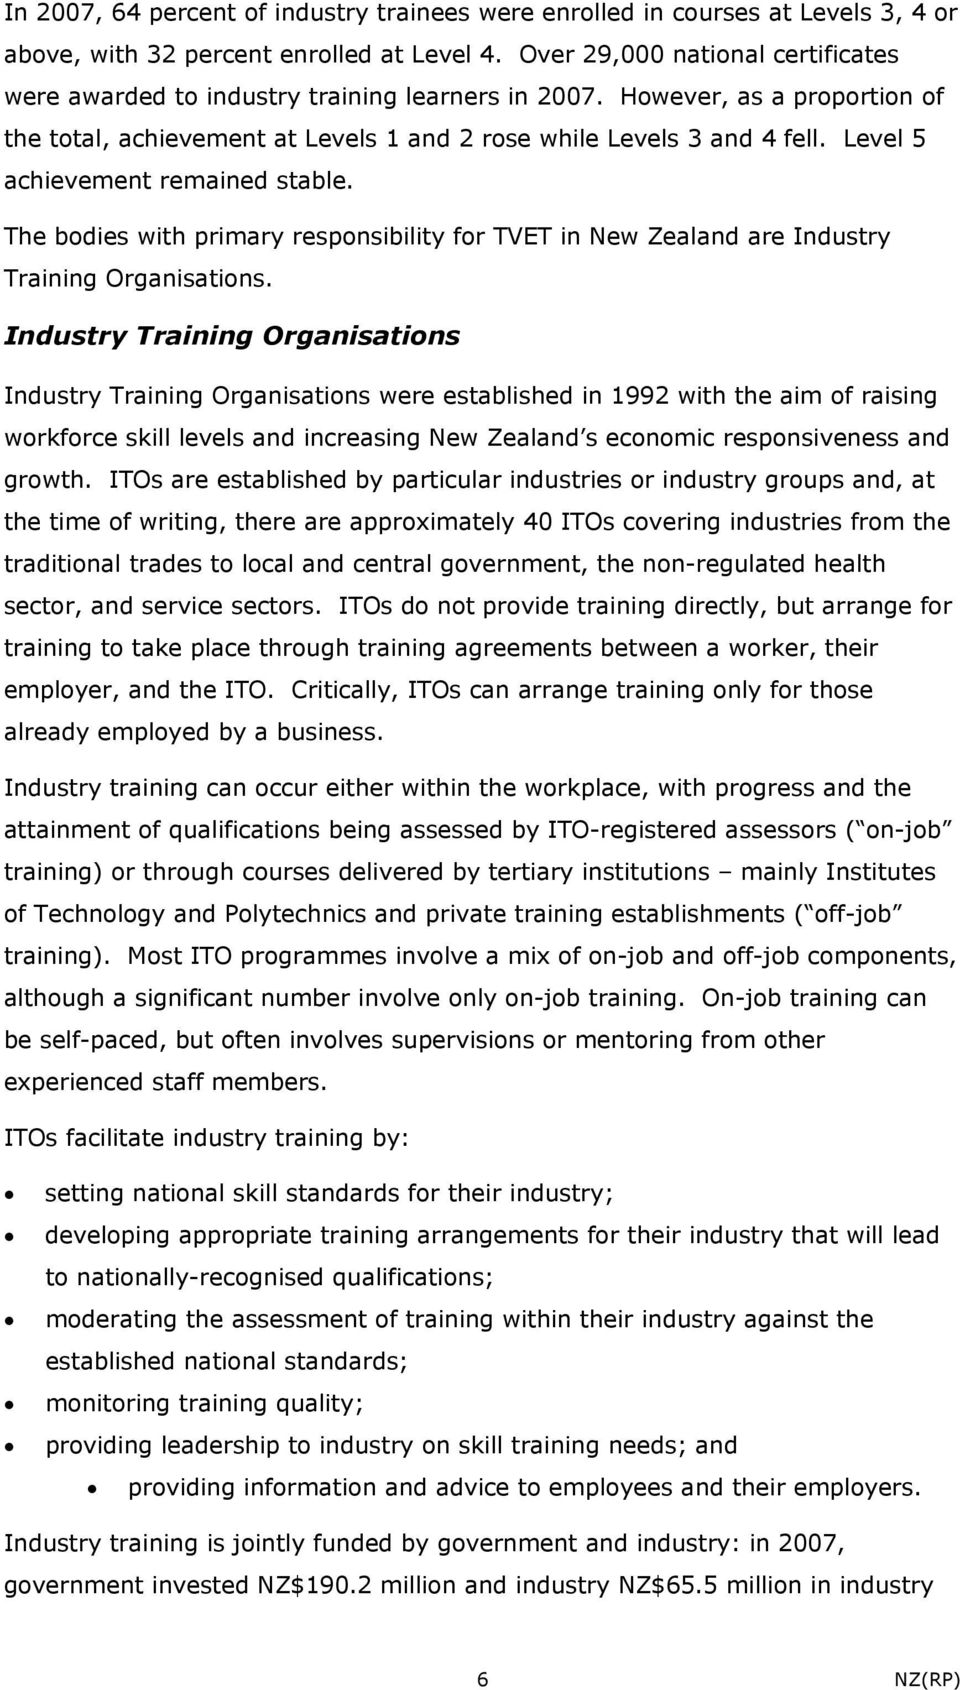 Level 5 achievement remained stable. The bodies with primary responsibility for TVET in New Zealand are Industry Training Organisations.